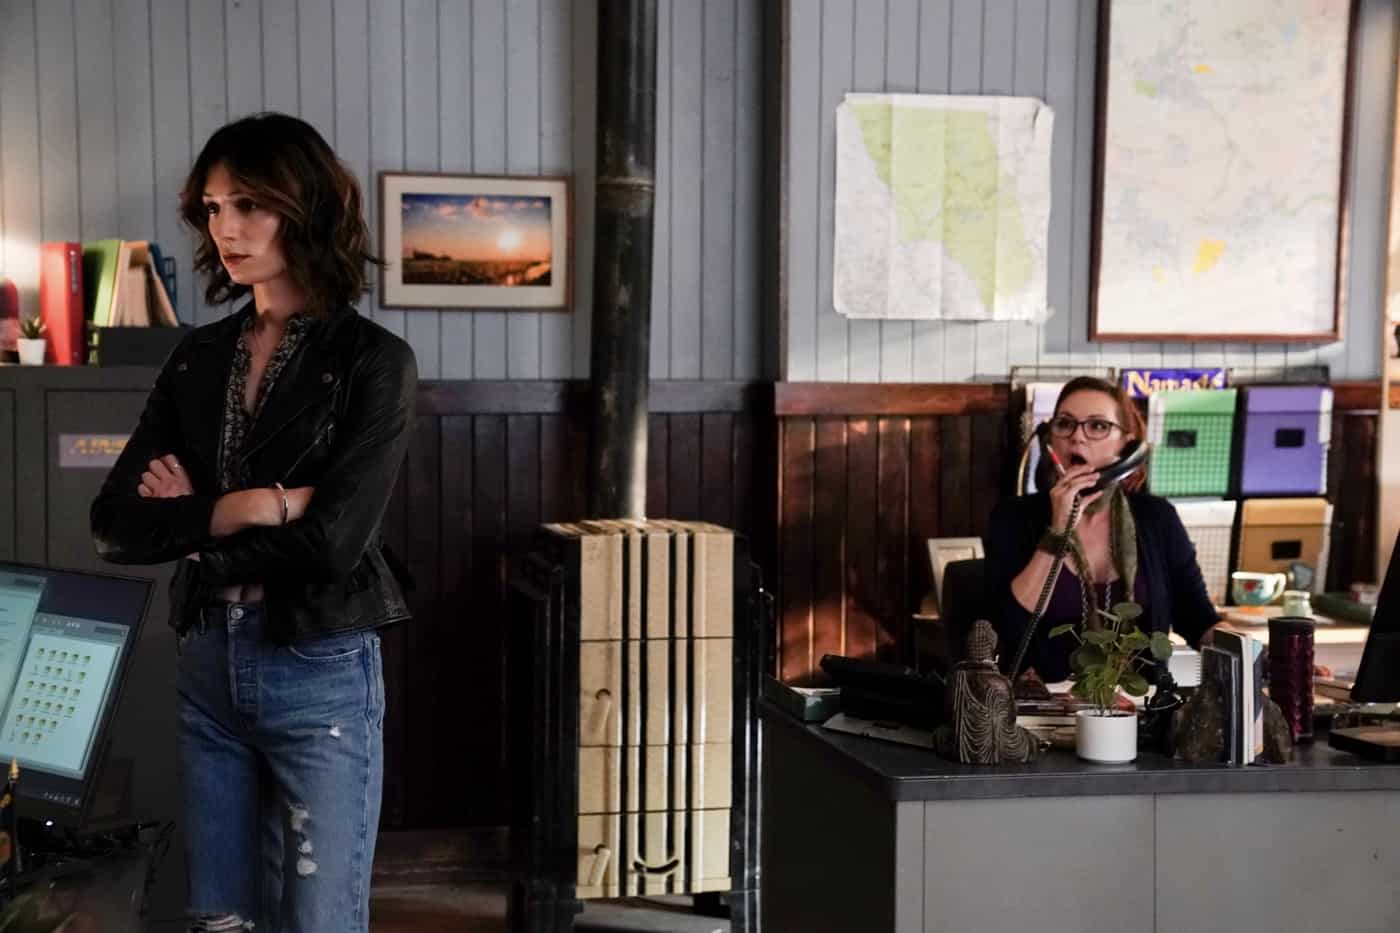 """BIG SKY Season 2 Episode 3 - """"You Have to Play Along"""" – After officially teaming up, Jenny and Cassie sit down with Tubb who reveals that this one goes far beyond their jurisdiction. Realizing Travis may be a man on the inside, Jenny reaches out for intel and learns the cartel is involved. With Tonya still missing, Cassie and Jenny fear the worst and kick their search into high gear. Meanwhile, the kids' plan continues to fall apart, with secrets and scheming threatening to land them in hot water, on an all-new episode of """"Big Sky,"""" THURSDAY, OCT. 14 (10:00-11:01 p.m. EDT), on ABC. (ABC/Michael Moriatis) JESSE JAMES KEITEL, DEDEE PFEIFFER"""